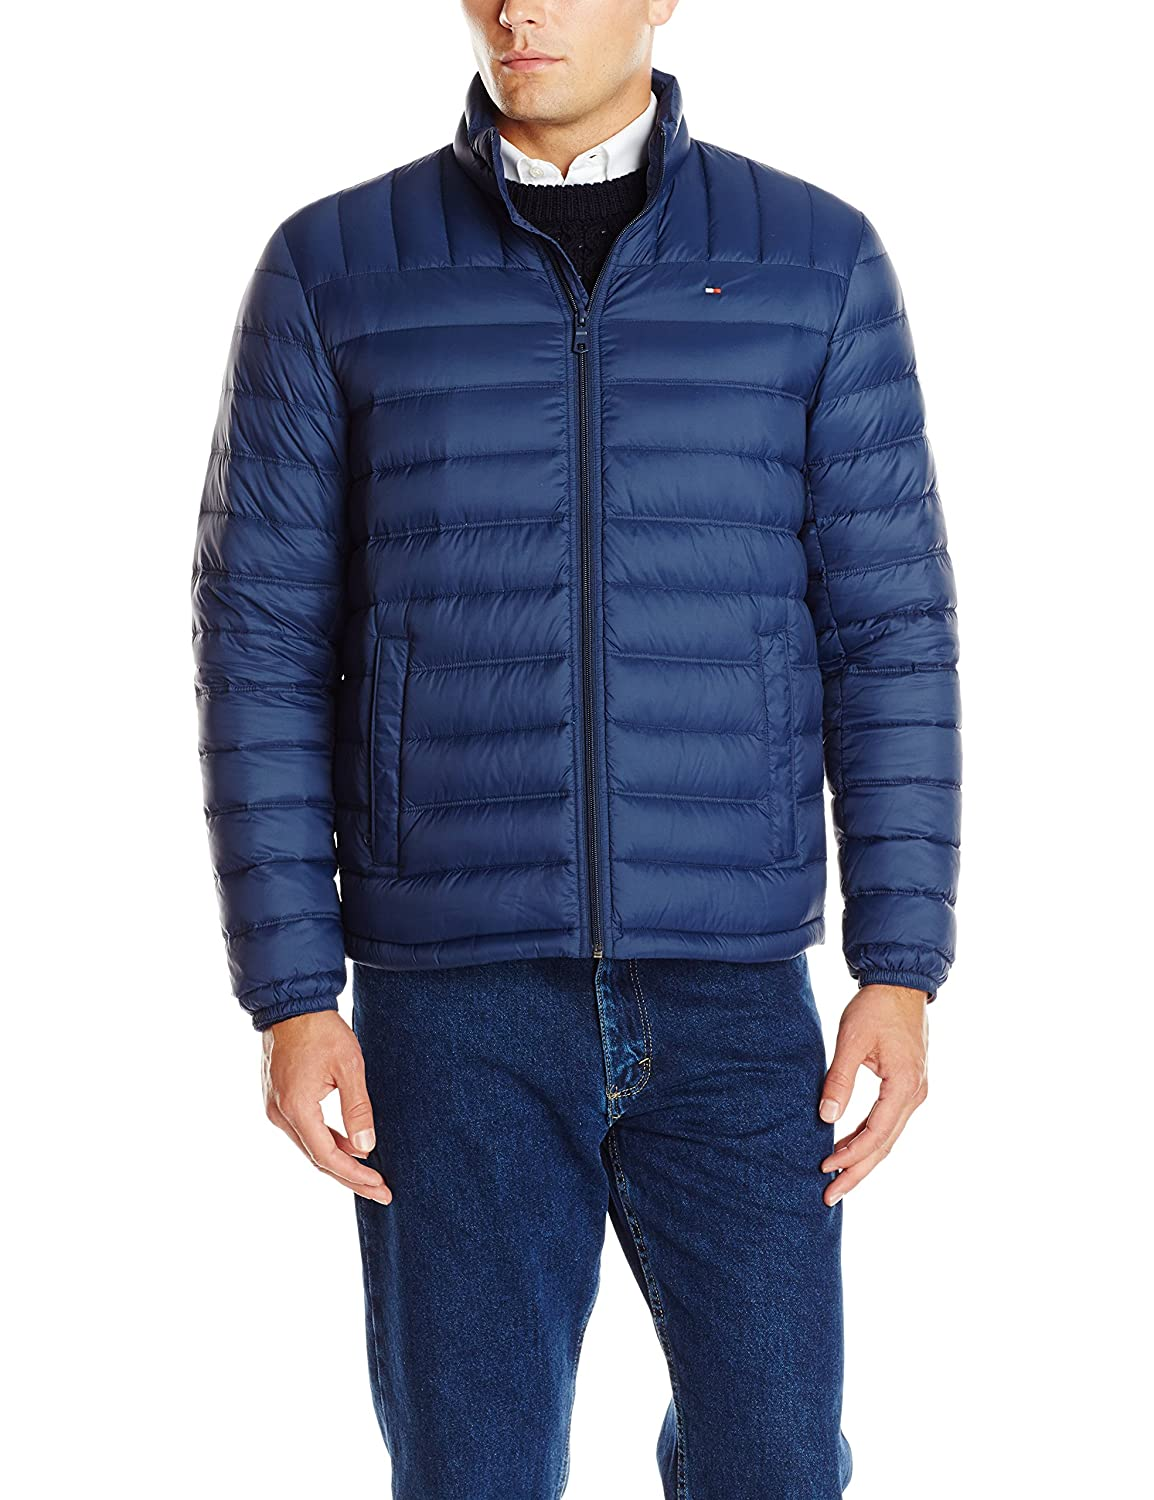 Tommy Hilfiger Mens Packable Down Jacket  Regular and Big   Tall Sizes